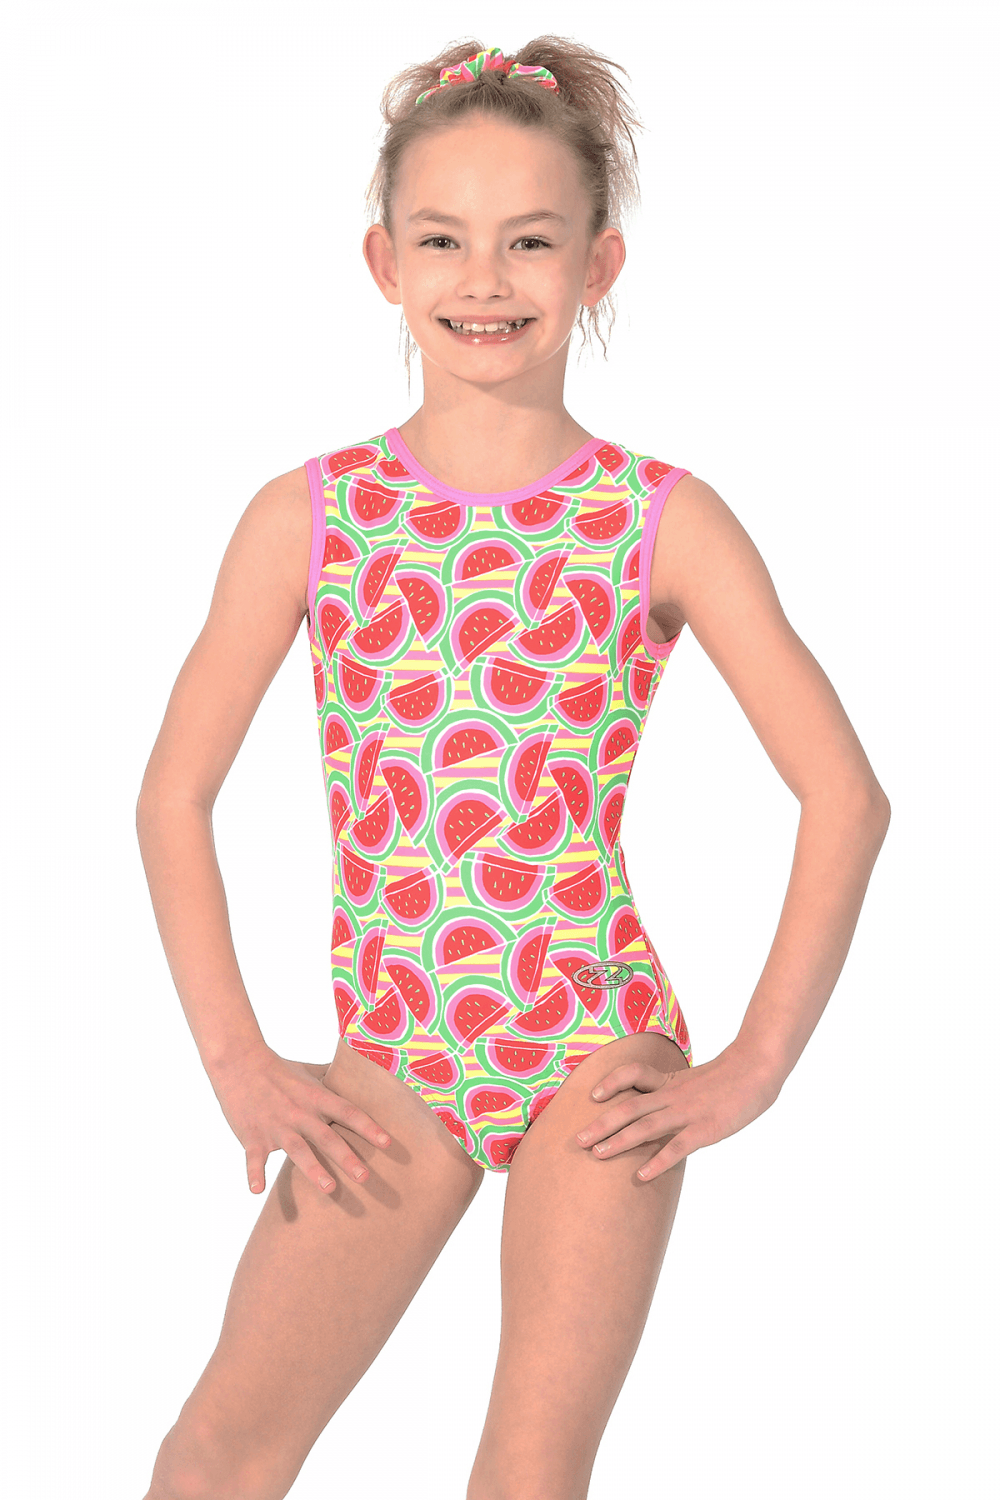 Sleeveless Gymnastics Leotard